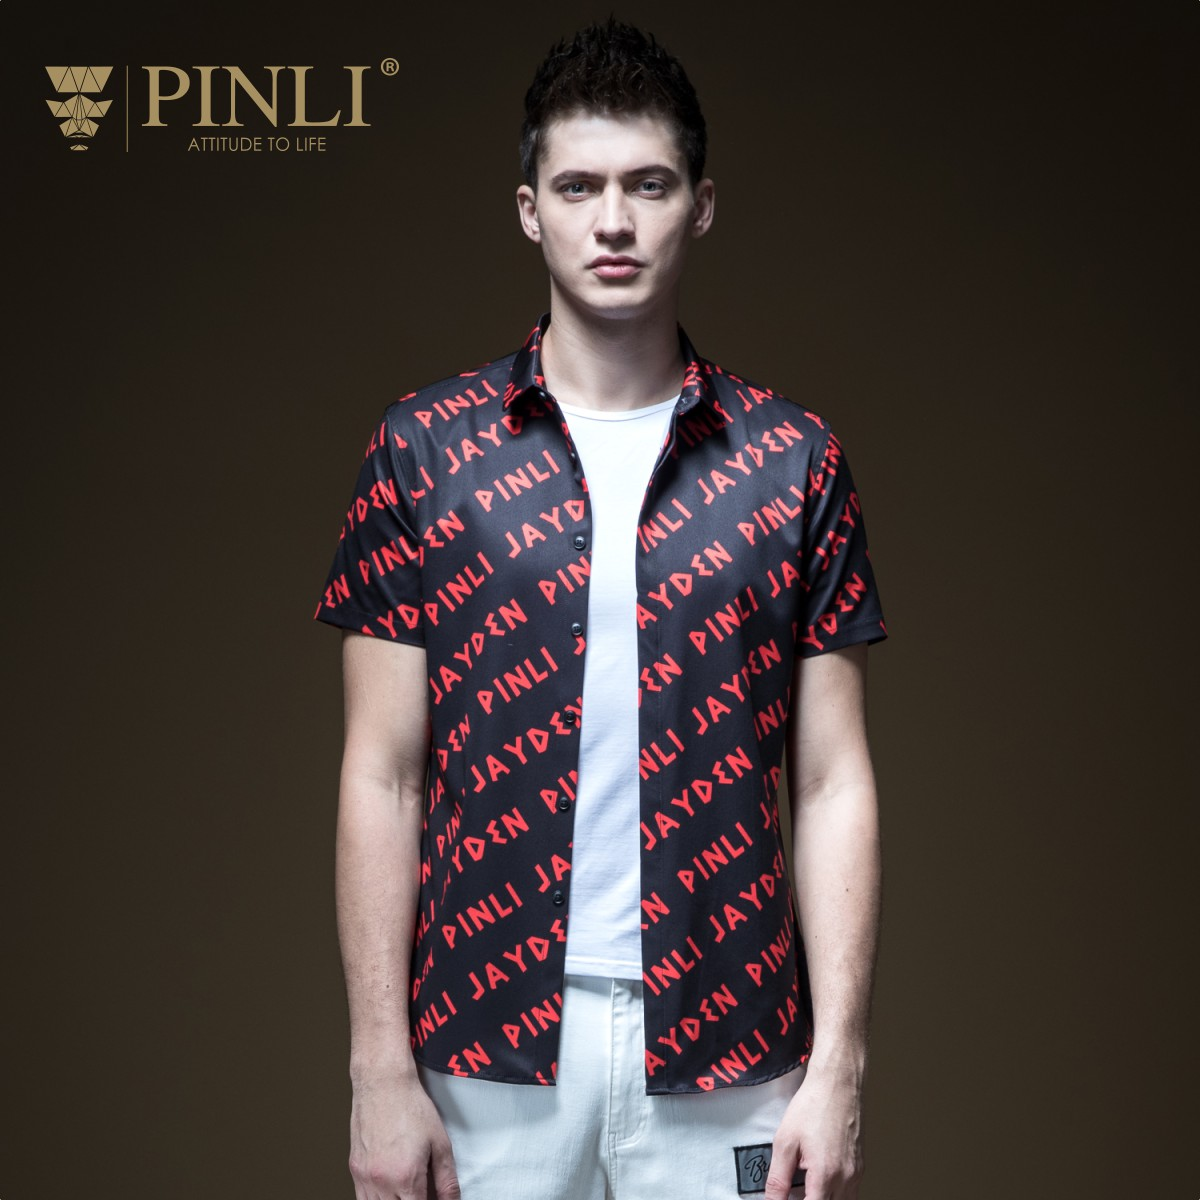 2018 Camisa Social Para Hombre Men Shirt Pinli Summer New Men's Decorated Body Printed Short-sleeved Clothes Tide B192113259